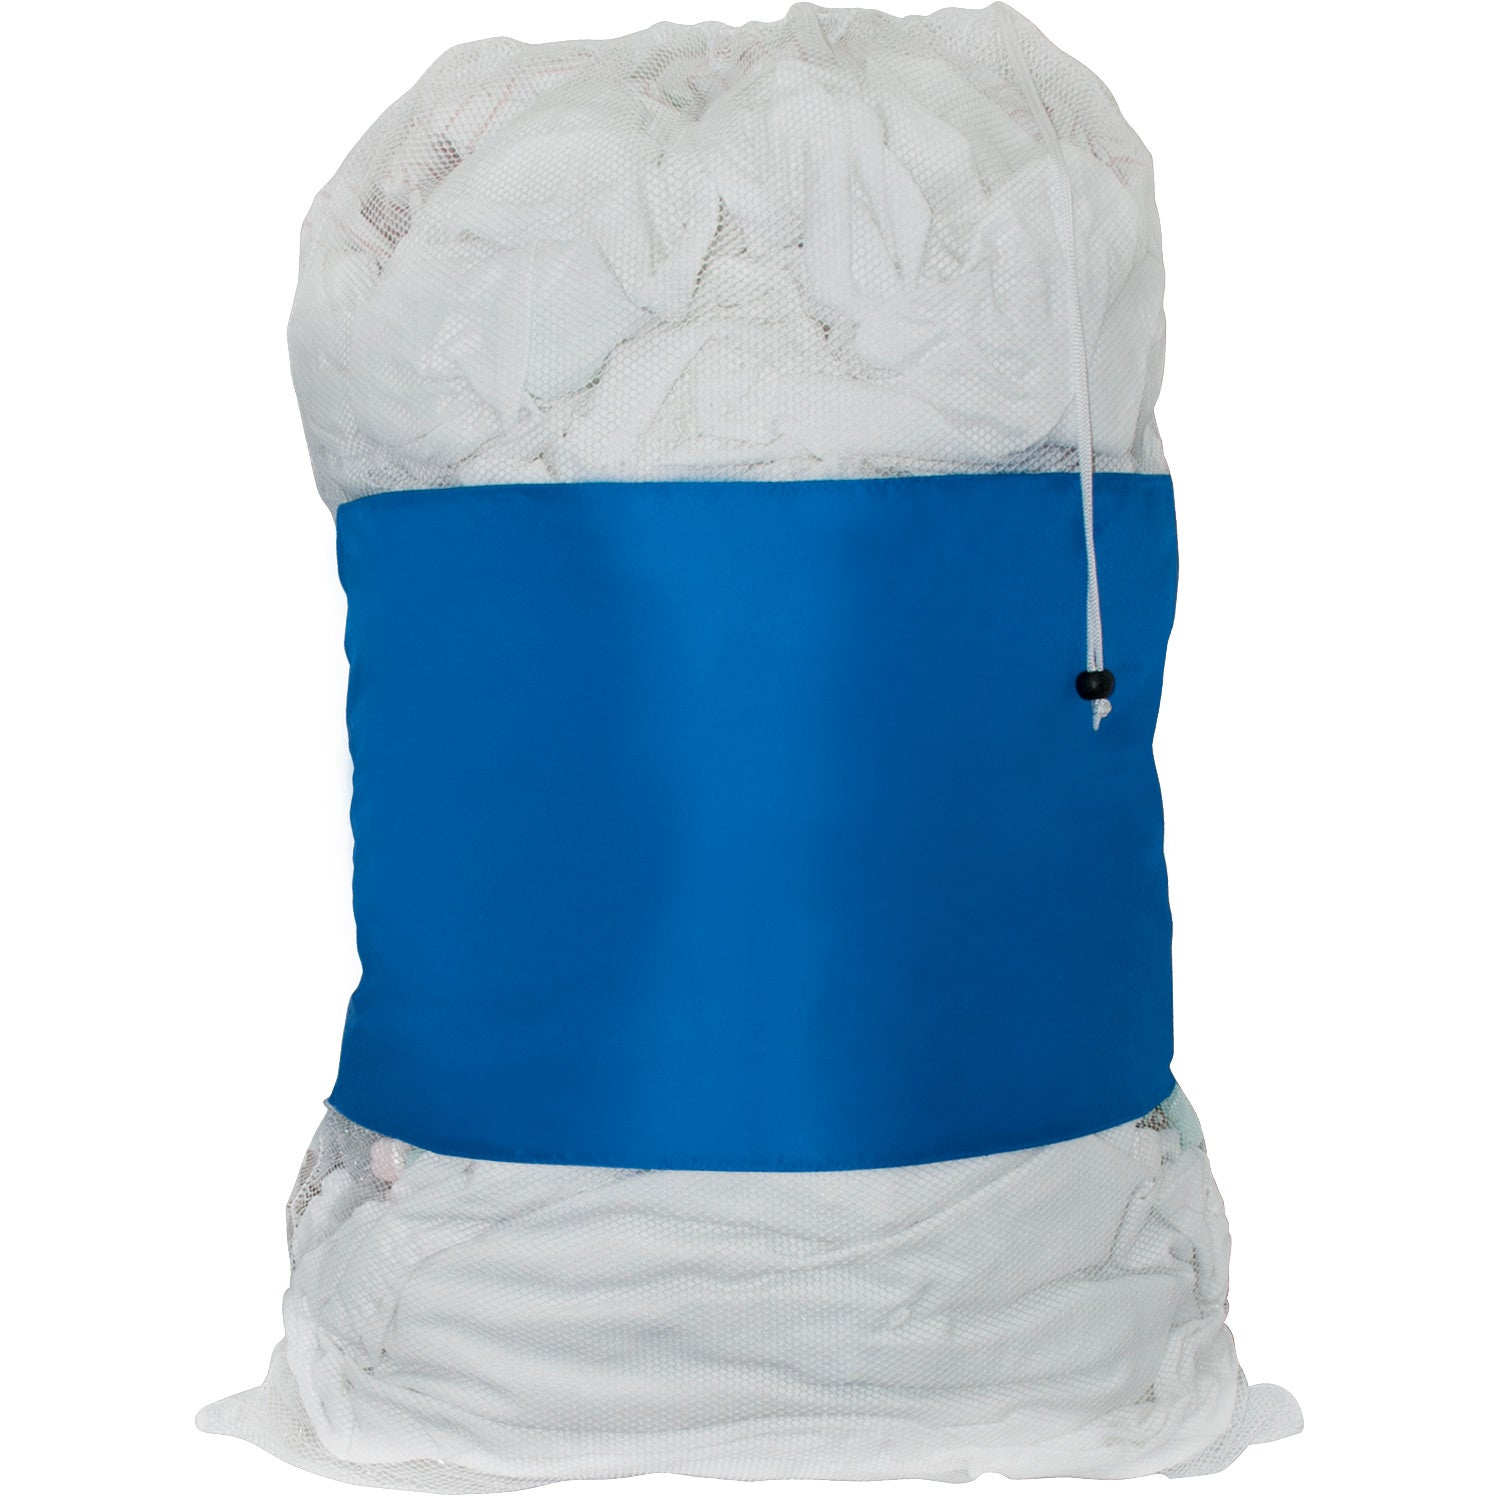 Picture dorms and locker rooms filled with your logo when you customize this polyester laundry bag for your business promotion. The T polyester, similar to tent fabric, has its waterproof qualities enhanced with a mil black vinyl front panel.